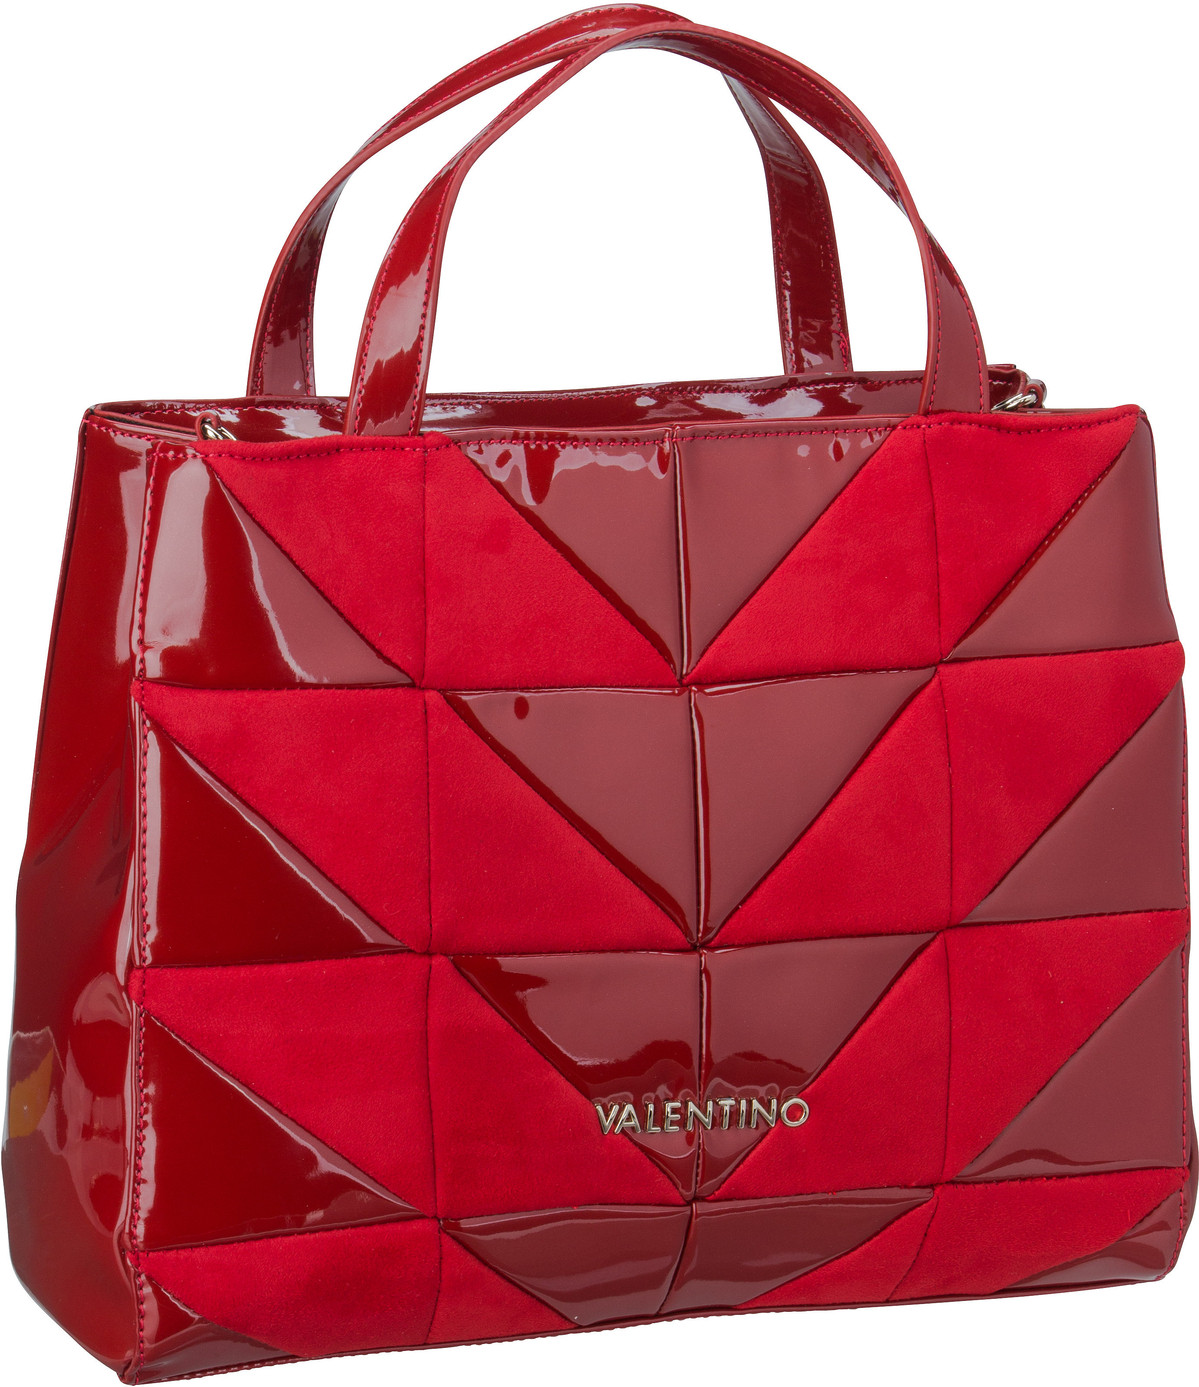 Bags Handtasche Cymbal Shopping 401 Rosso